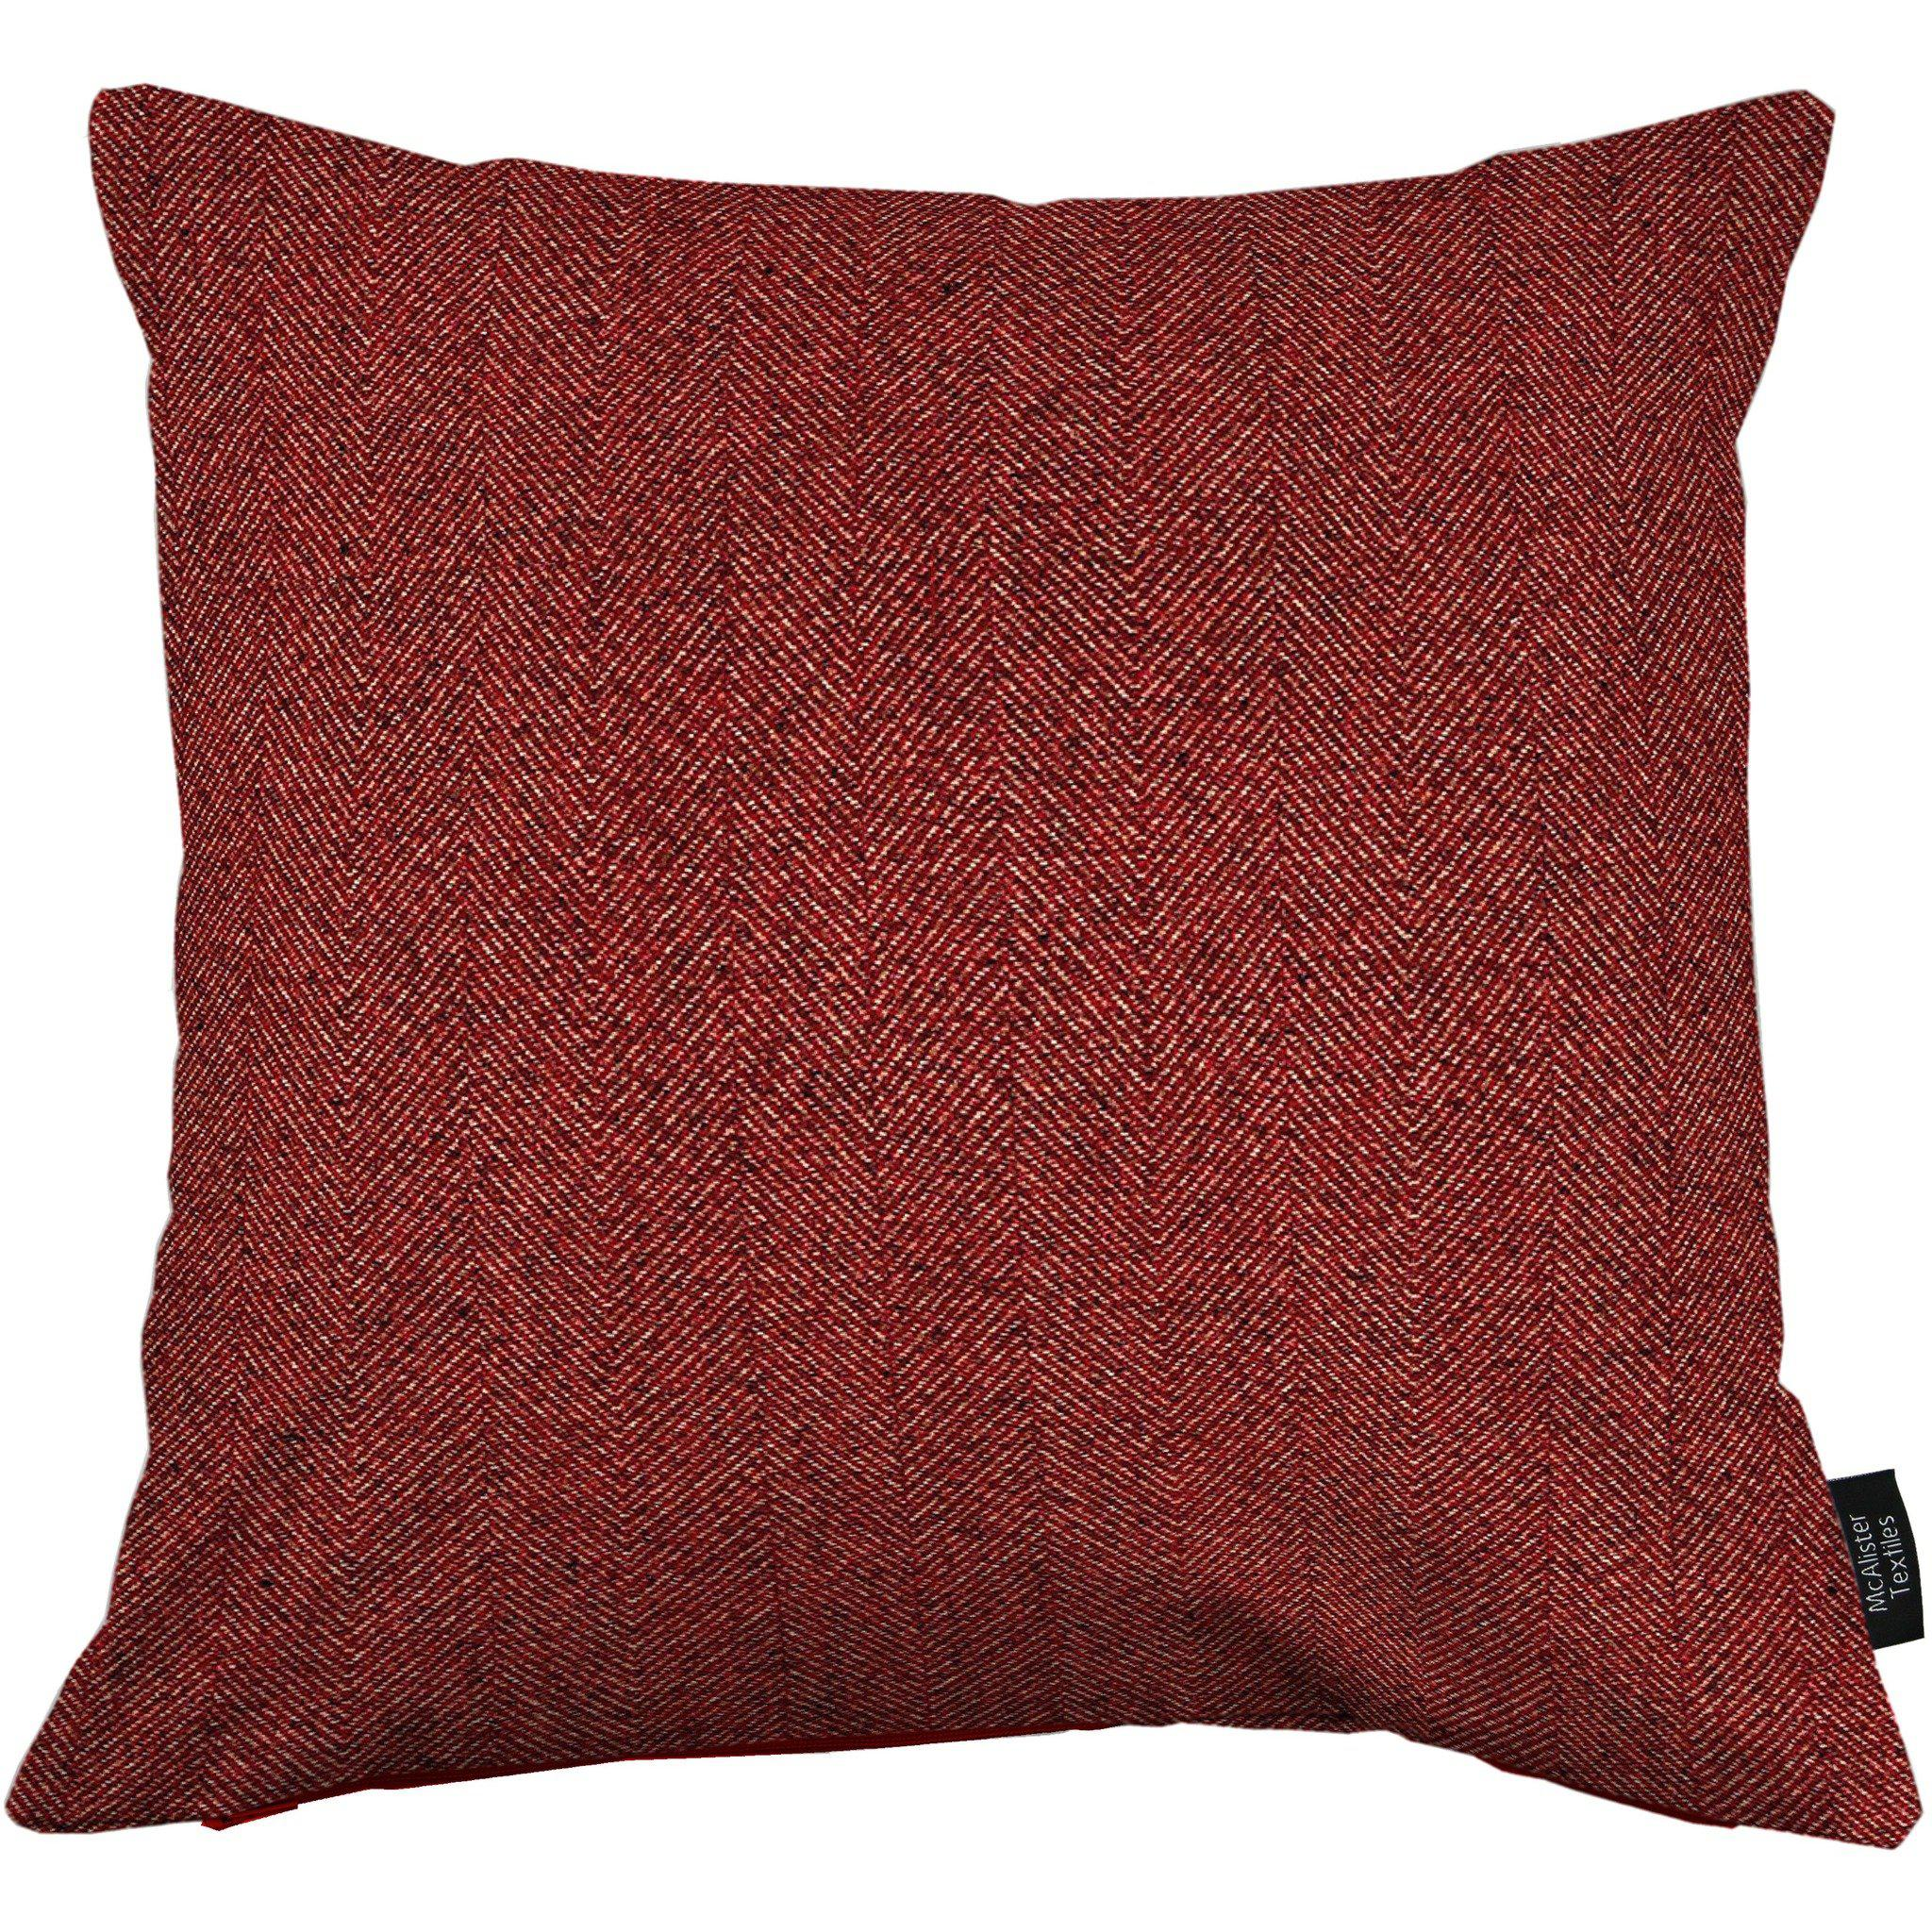 McAlister Textiles Herringbone Red Cushion Cushions and Covers Cover Only 43cm x 43cm